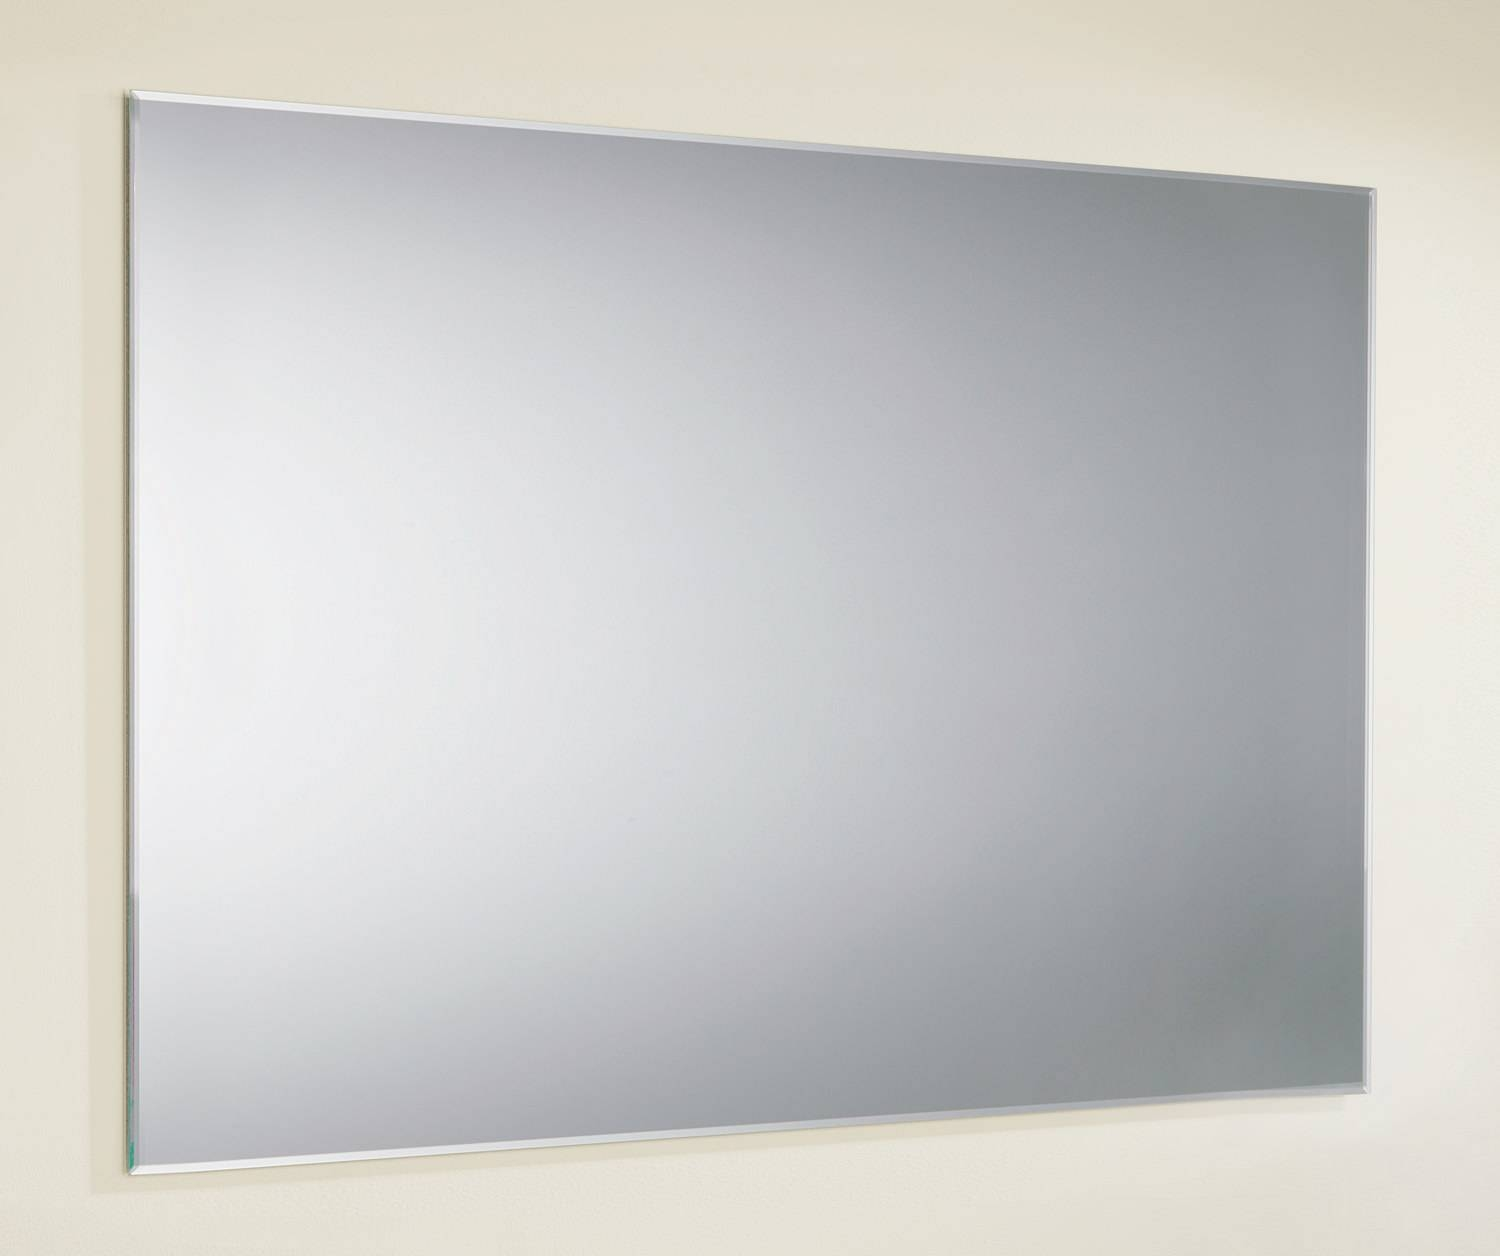 Hib Jackson Rectangular Bevelled Edge Mirror 800X600Mm | 76800000 for Chamfered Edge Mirrors (Image 5 of 15)